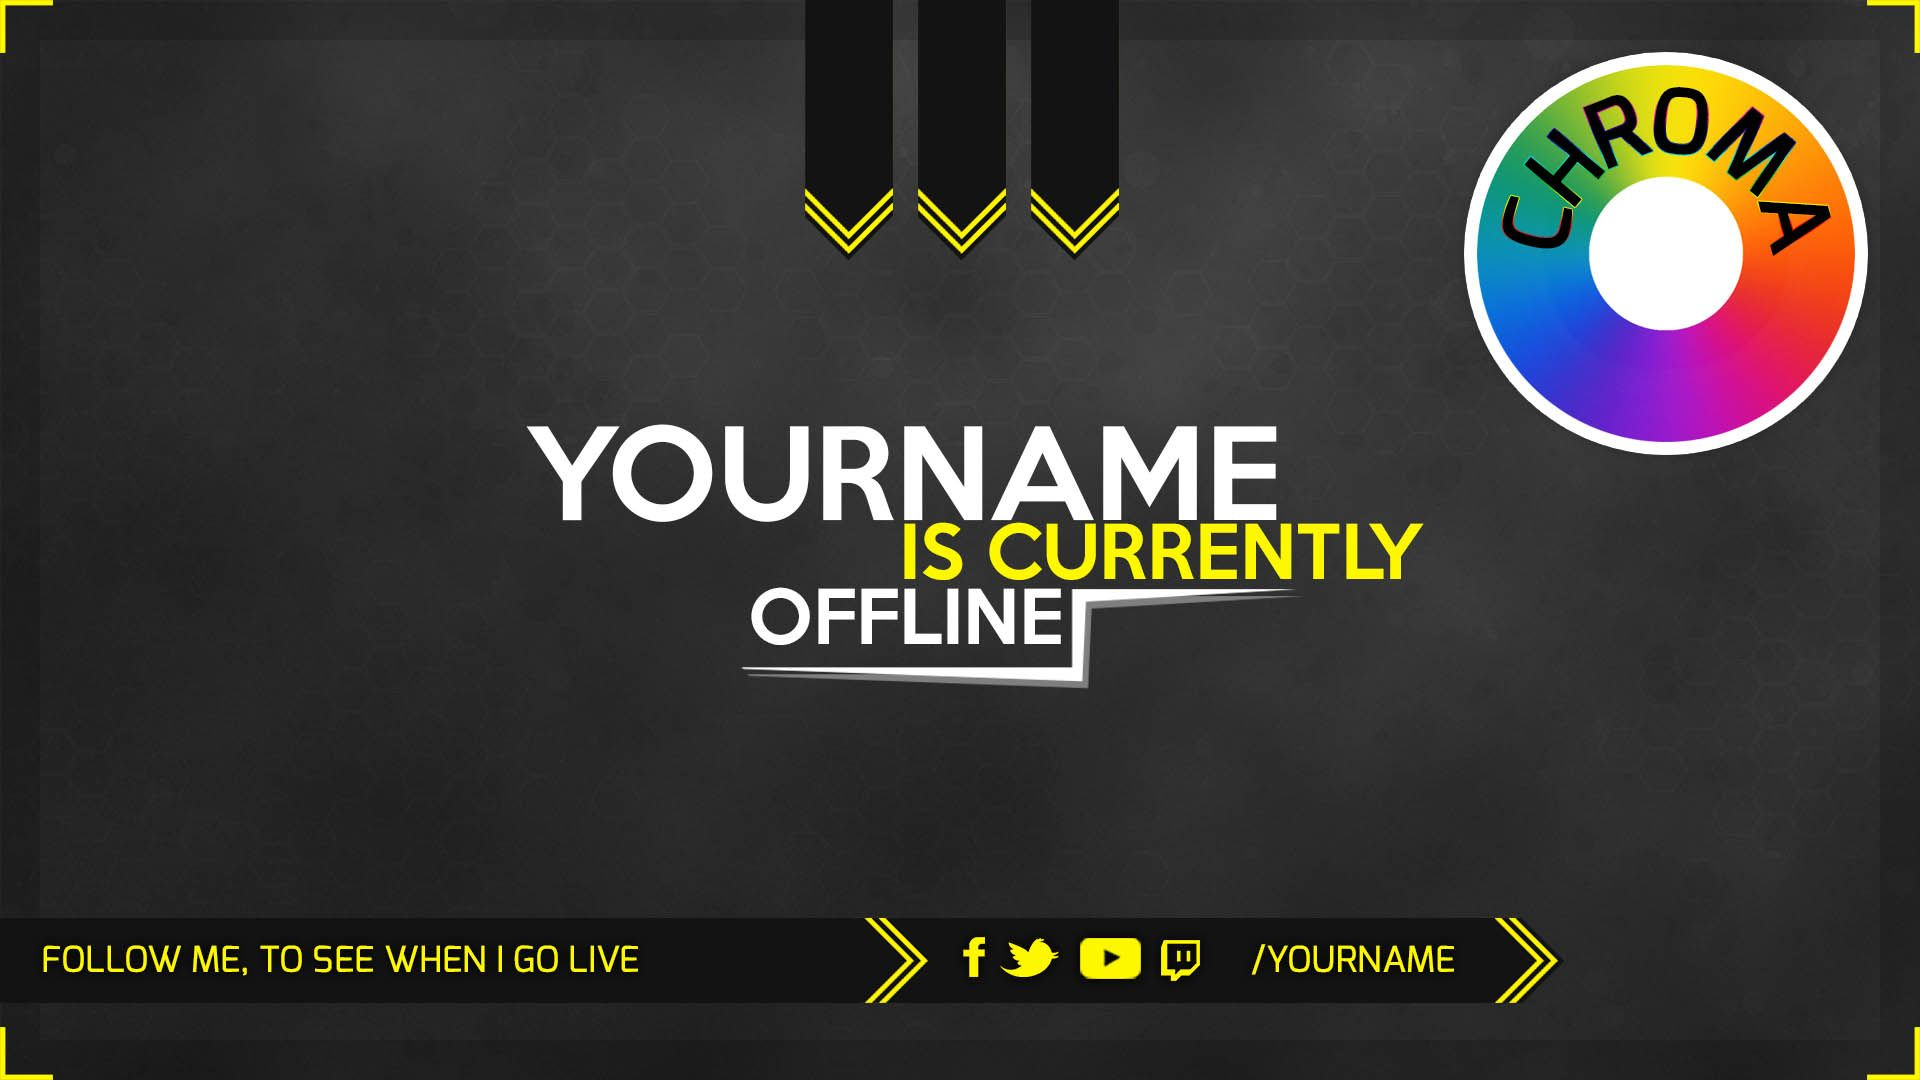 Alpha Twitch Offline Screen With Psd Template Download Also For